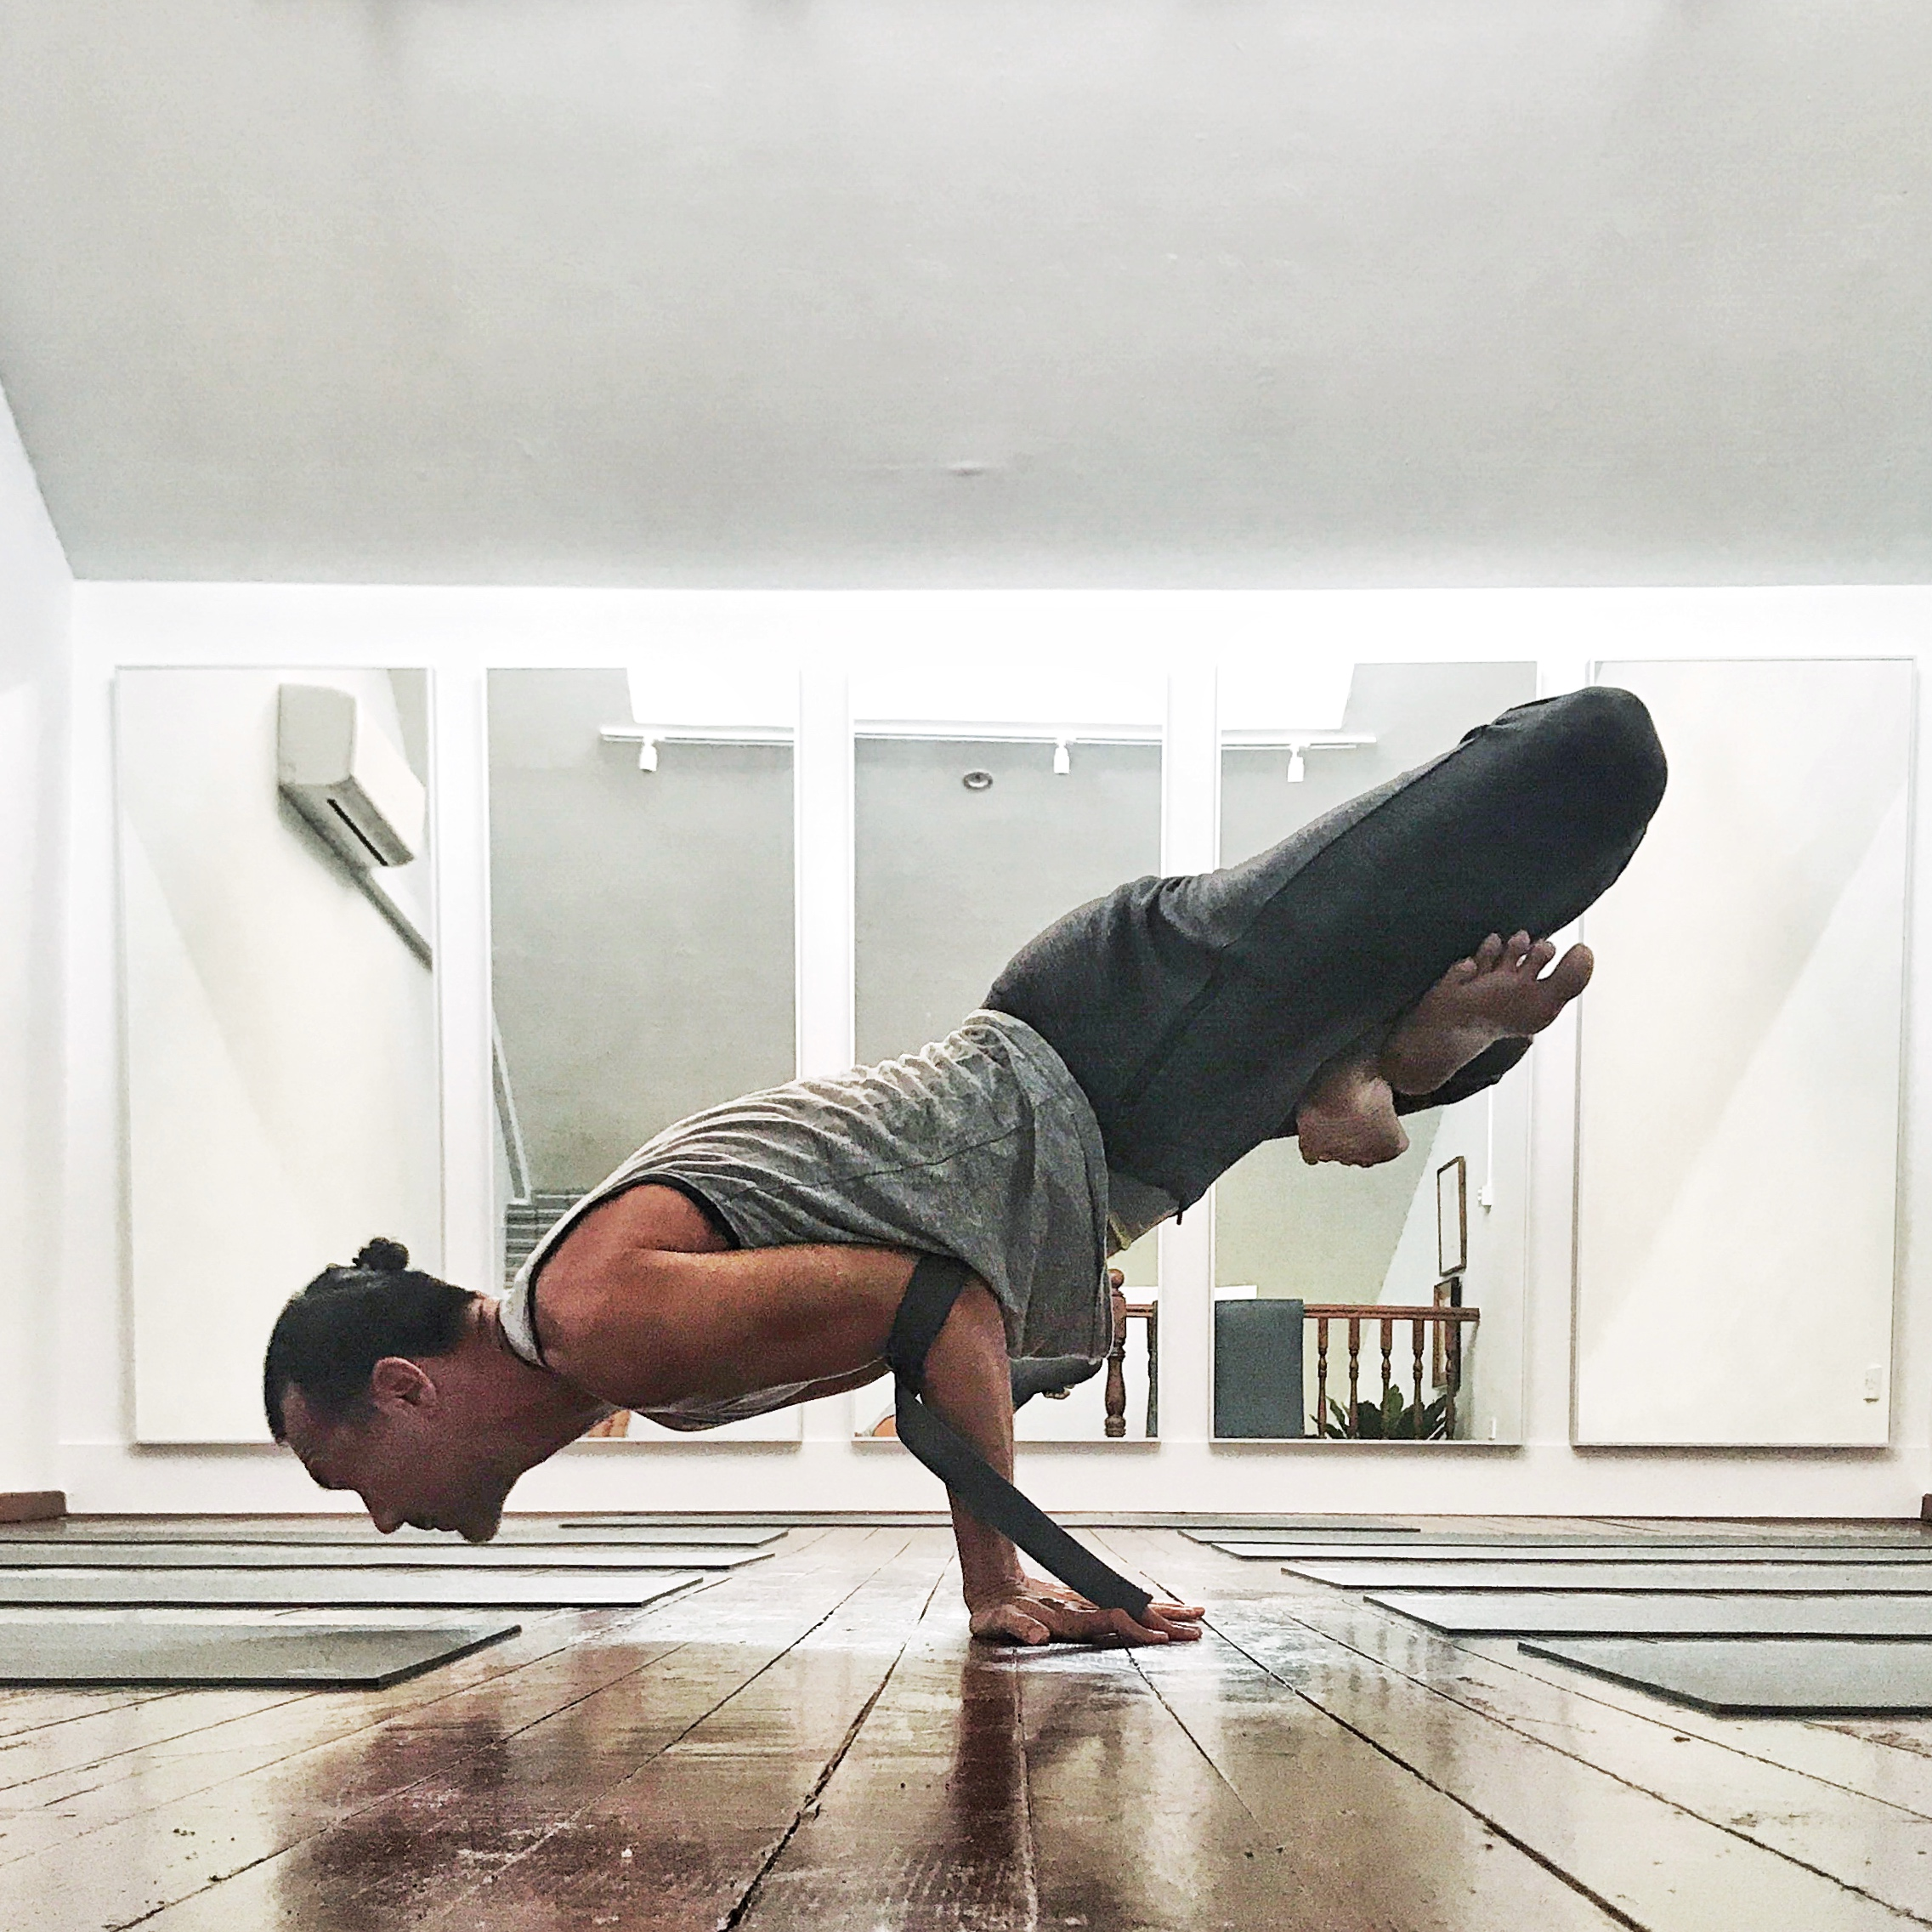 Viparita Shalabhasana or Full Locust Pose